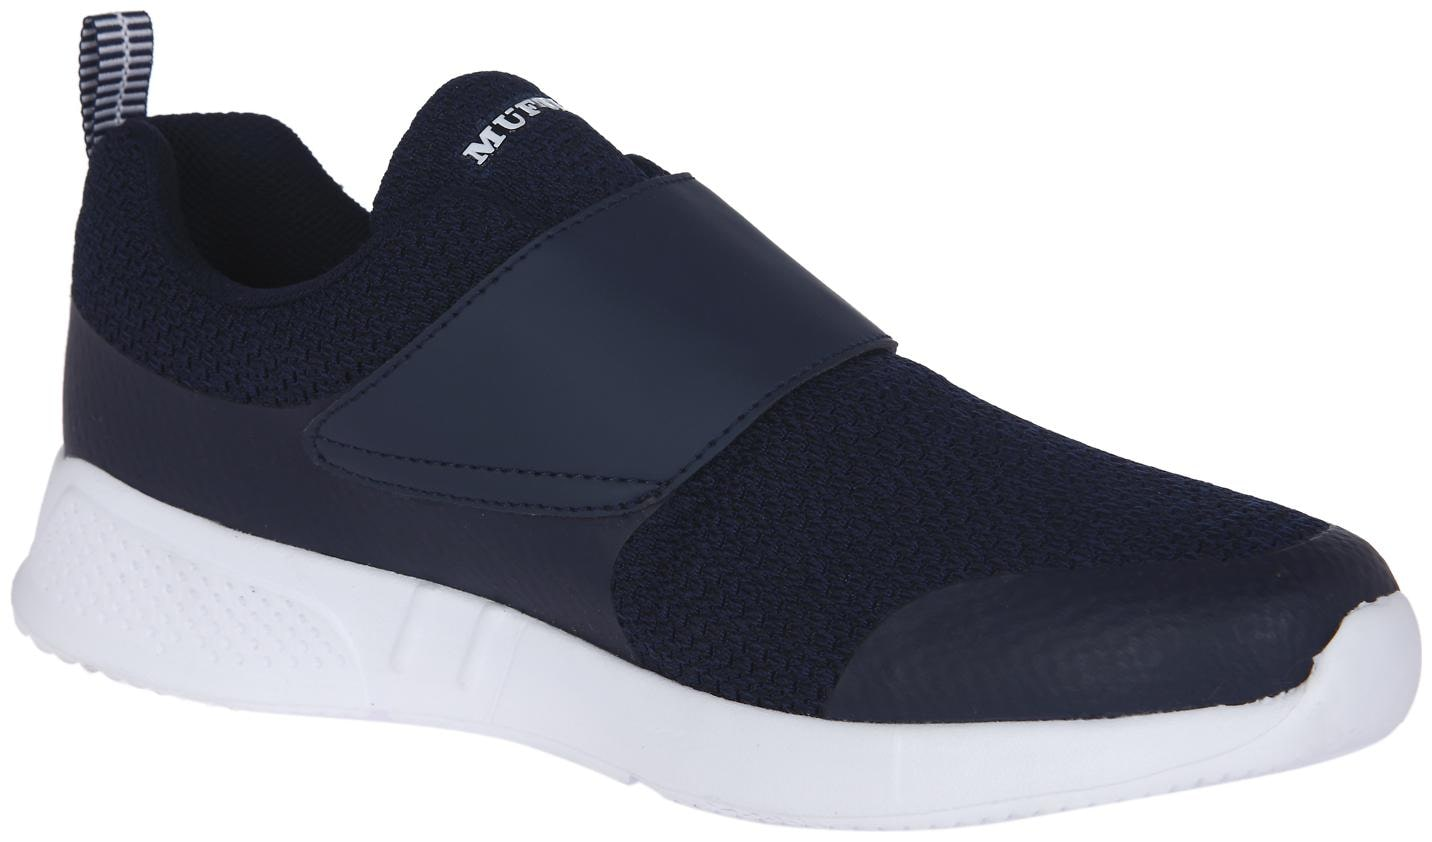 Buy Mufti Navy Strap On Casual Shoes